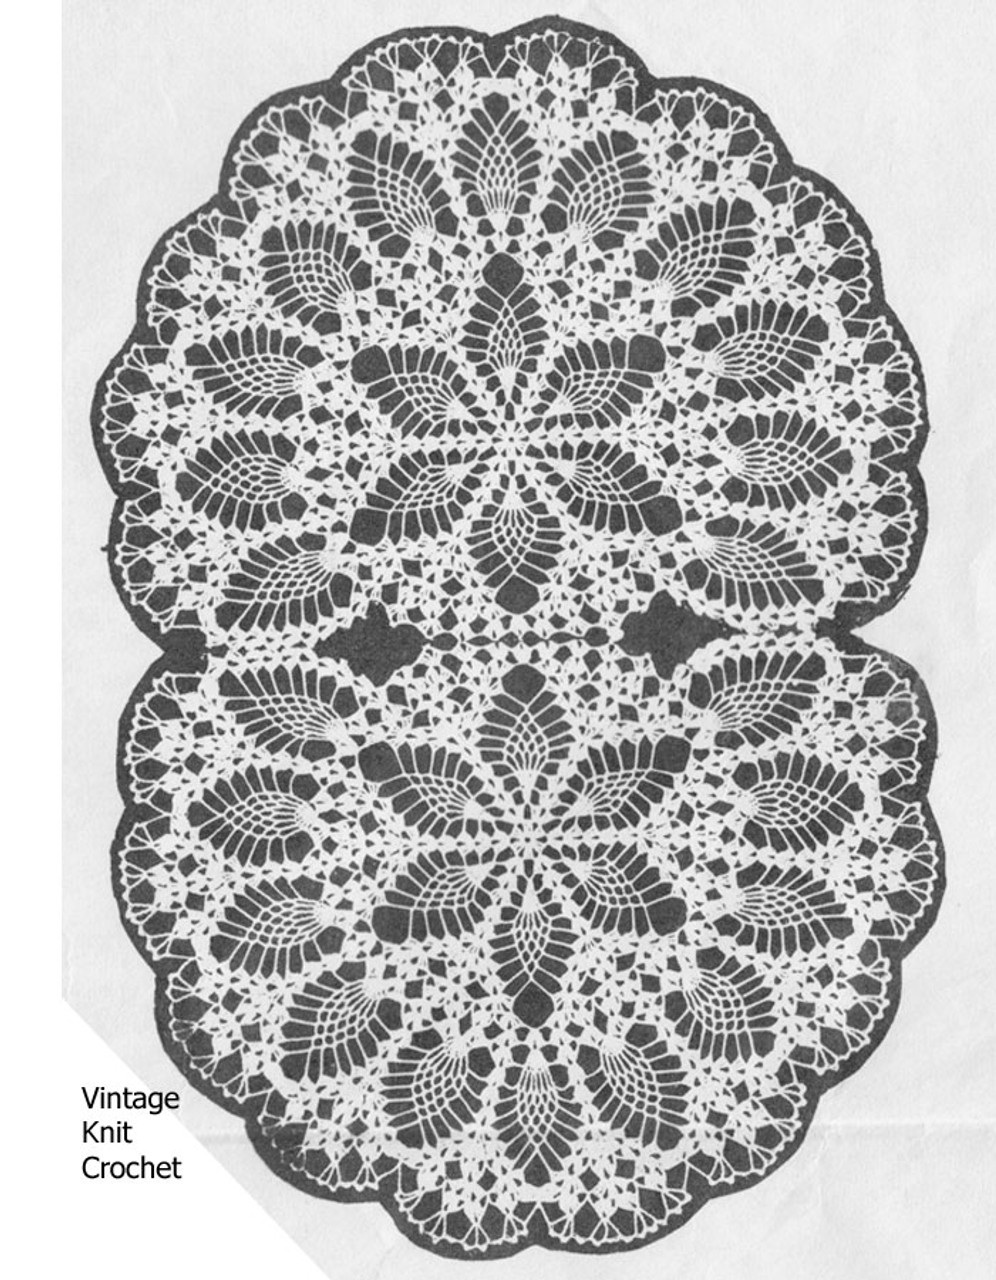 Oval Doily Pattern, Two joined chairbacks Design 7233